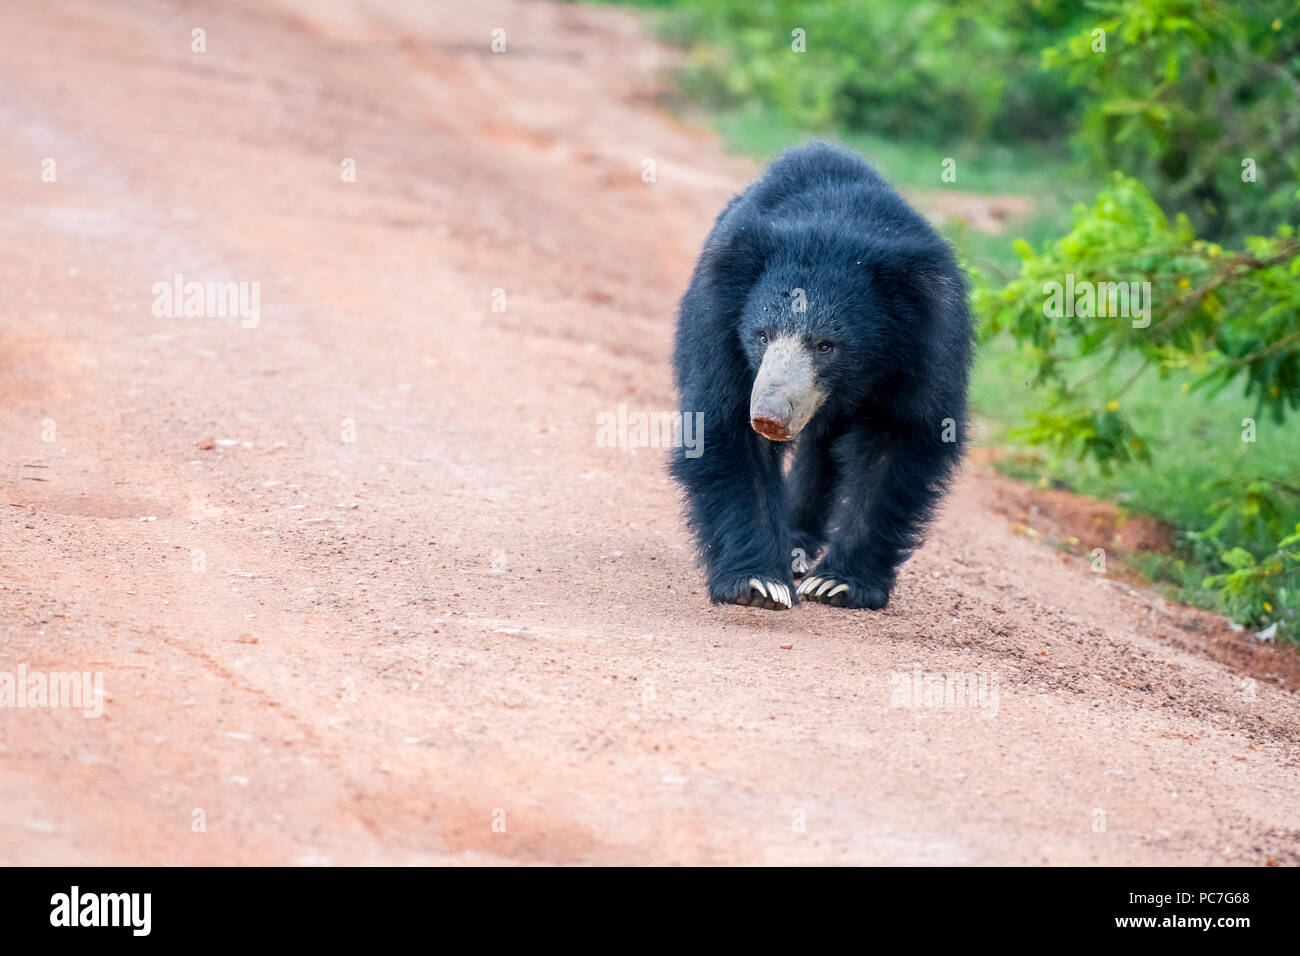 Sri Lankan bear in the jungle Stock Photo